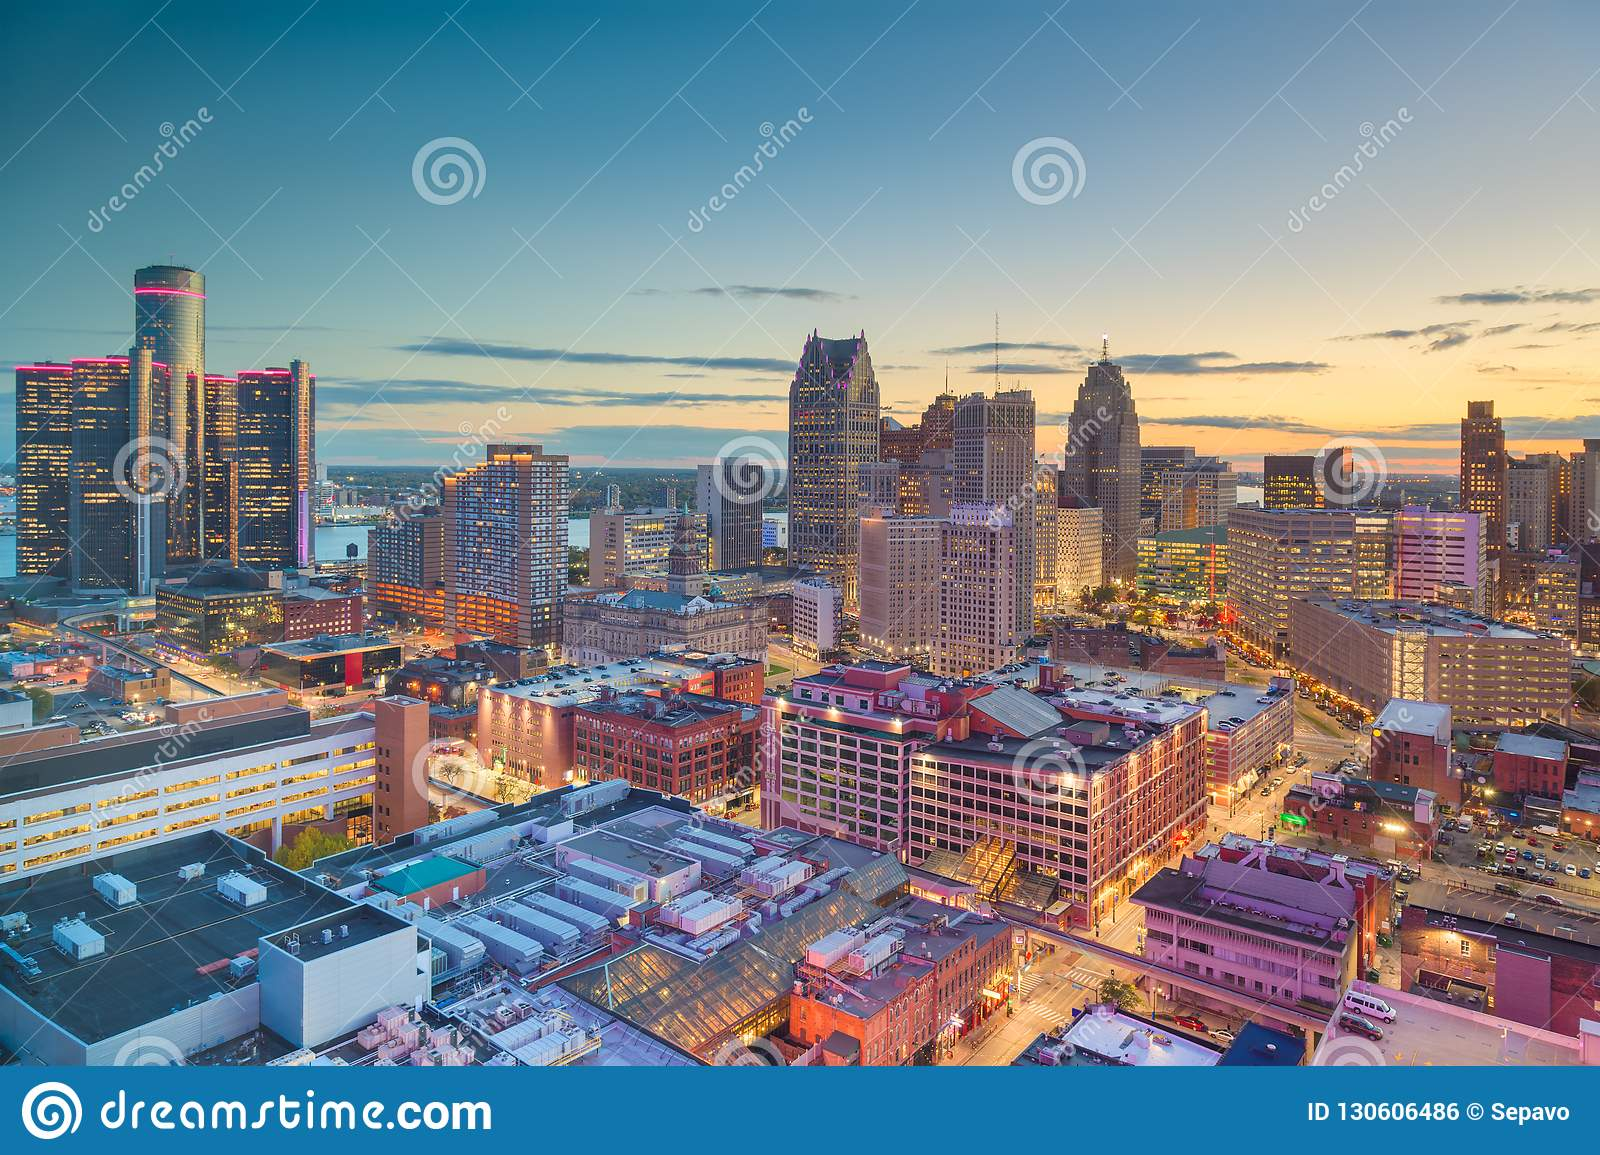 detroit michigan usa downtown skyline at dusk stock photo image of aerial architecture 130606486 https www dreamstime com detroit michigan usa downtown skyline dusk above image130606486